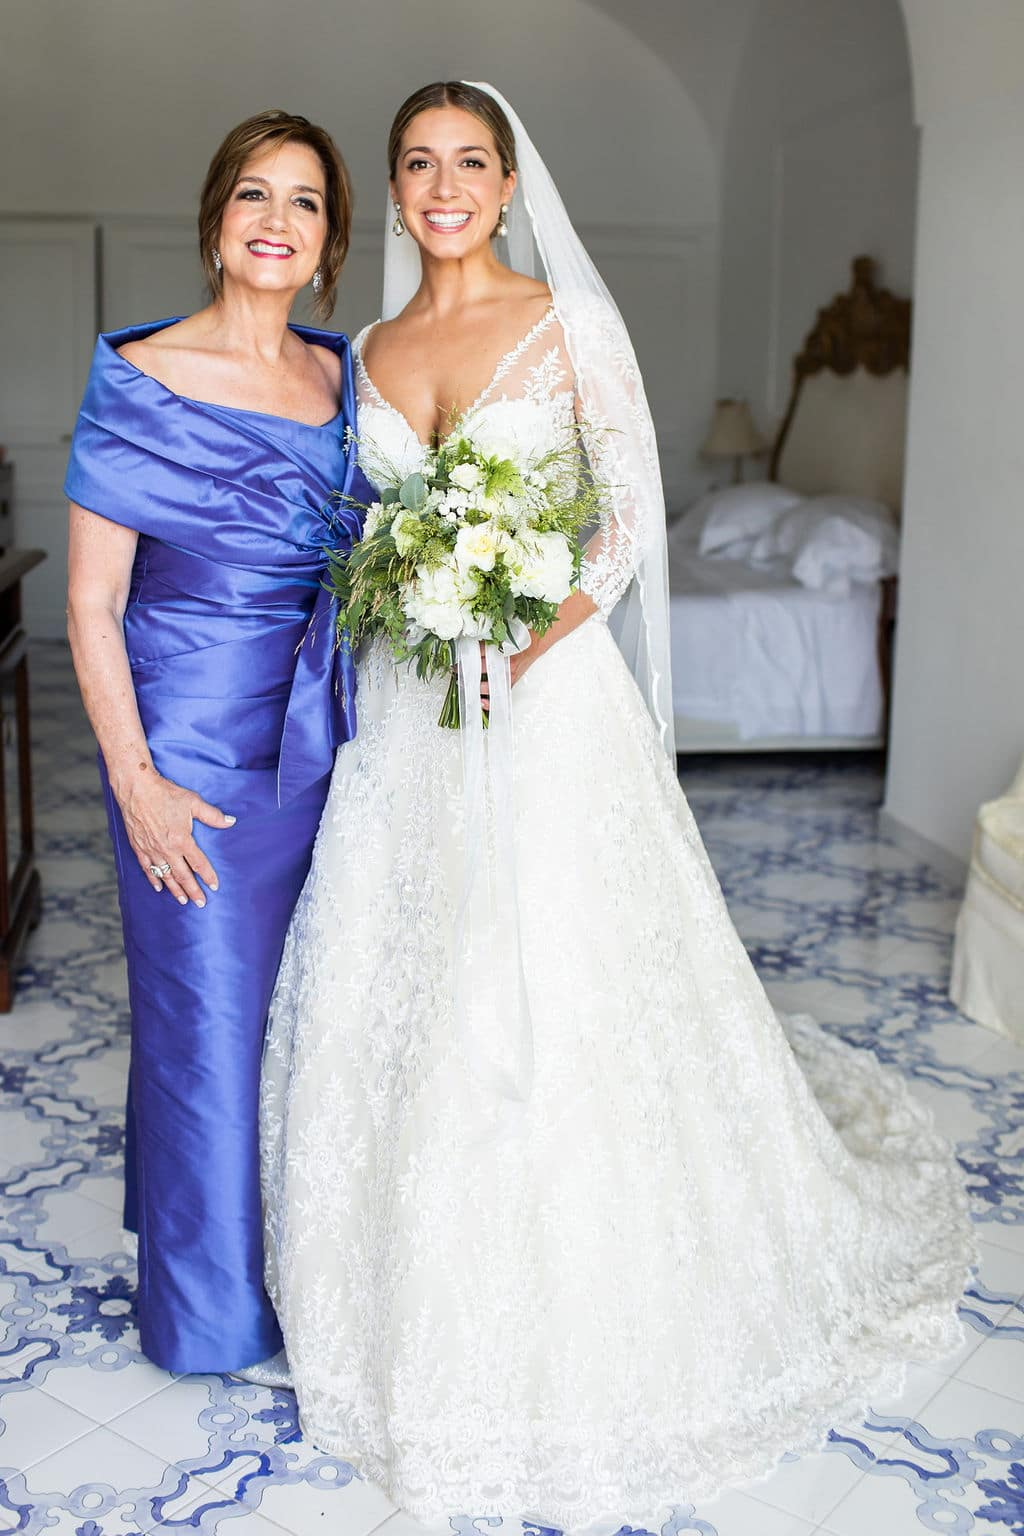 mother of the bride with the bride before the ceremony in italy and blue and white floors